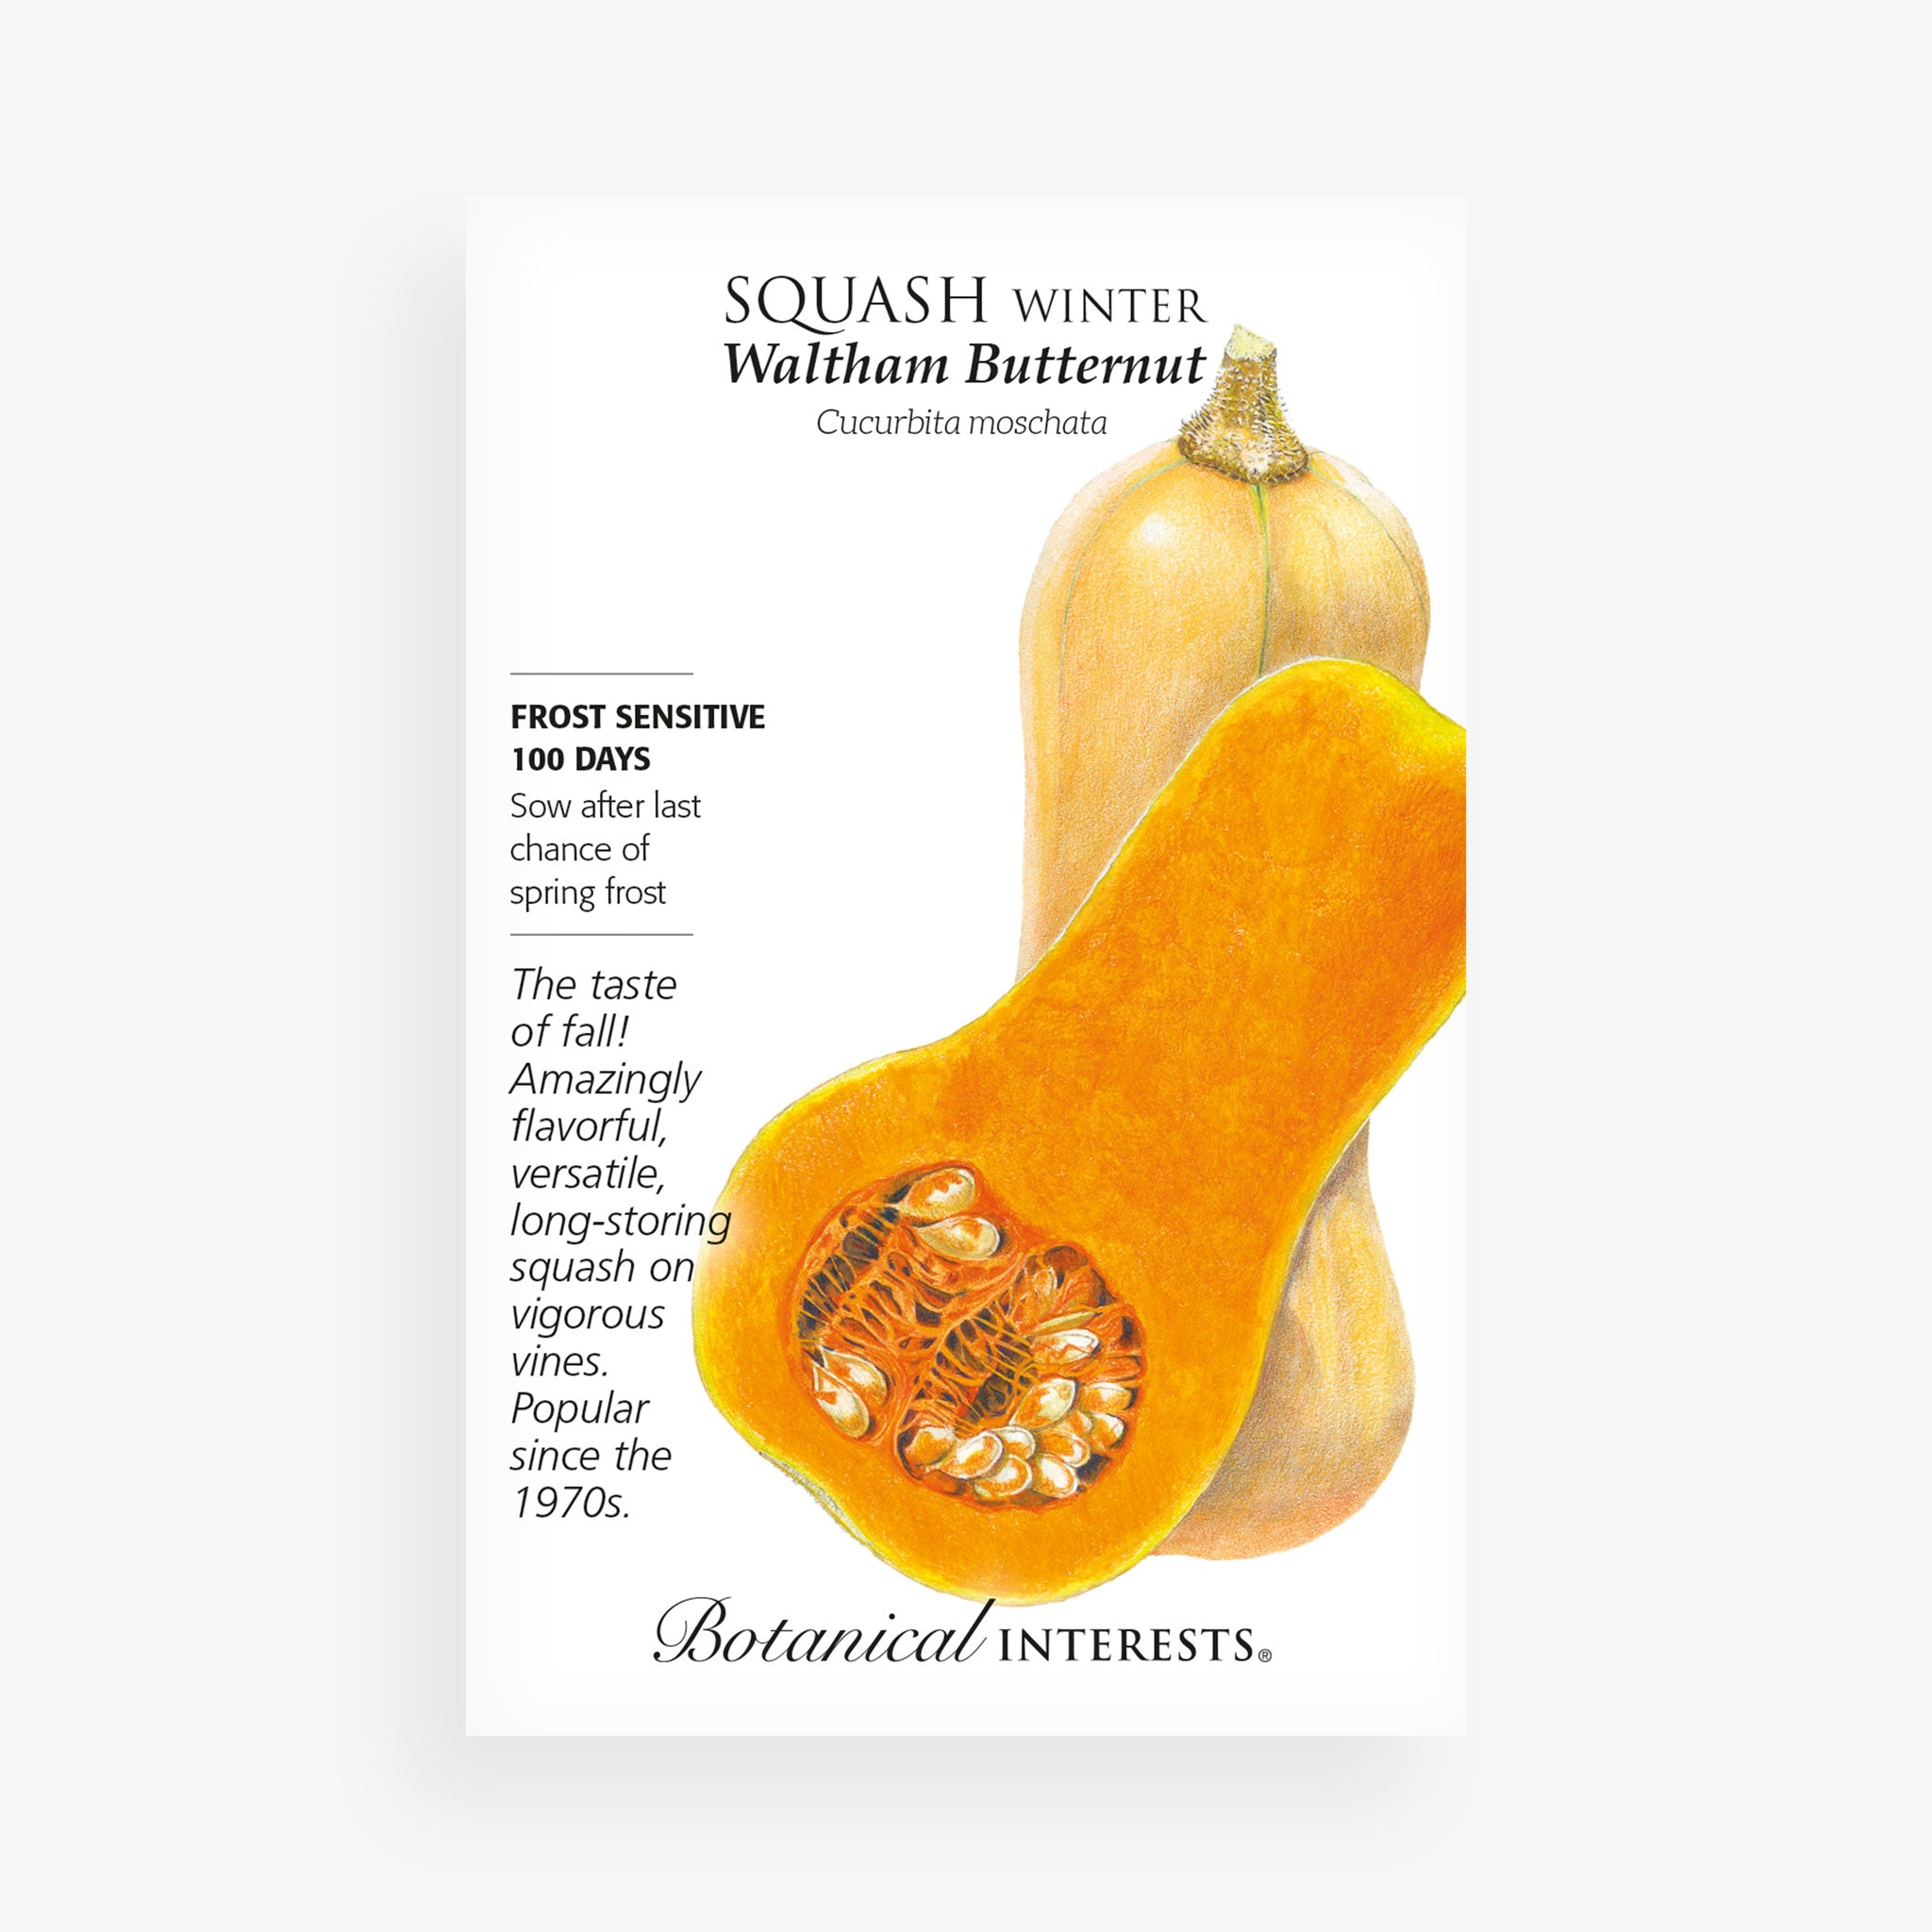 'Waltham Butternut' Winter Squash Seed Packet